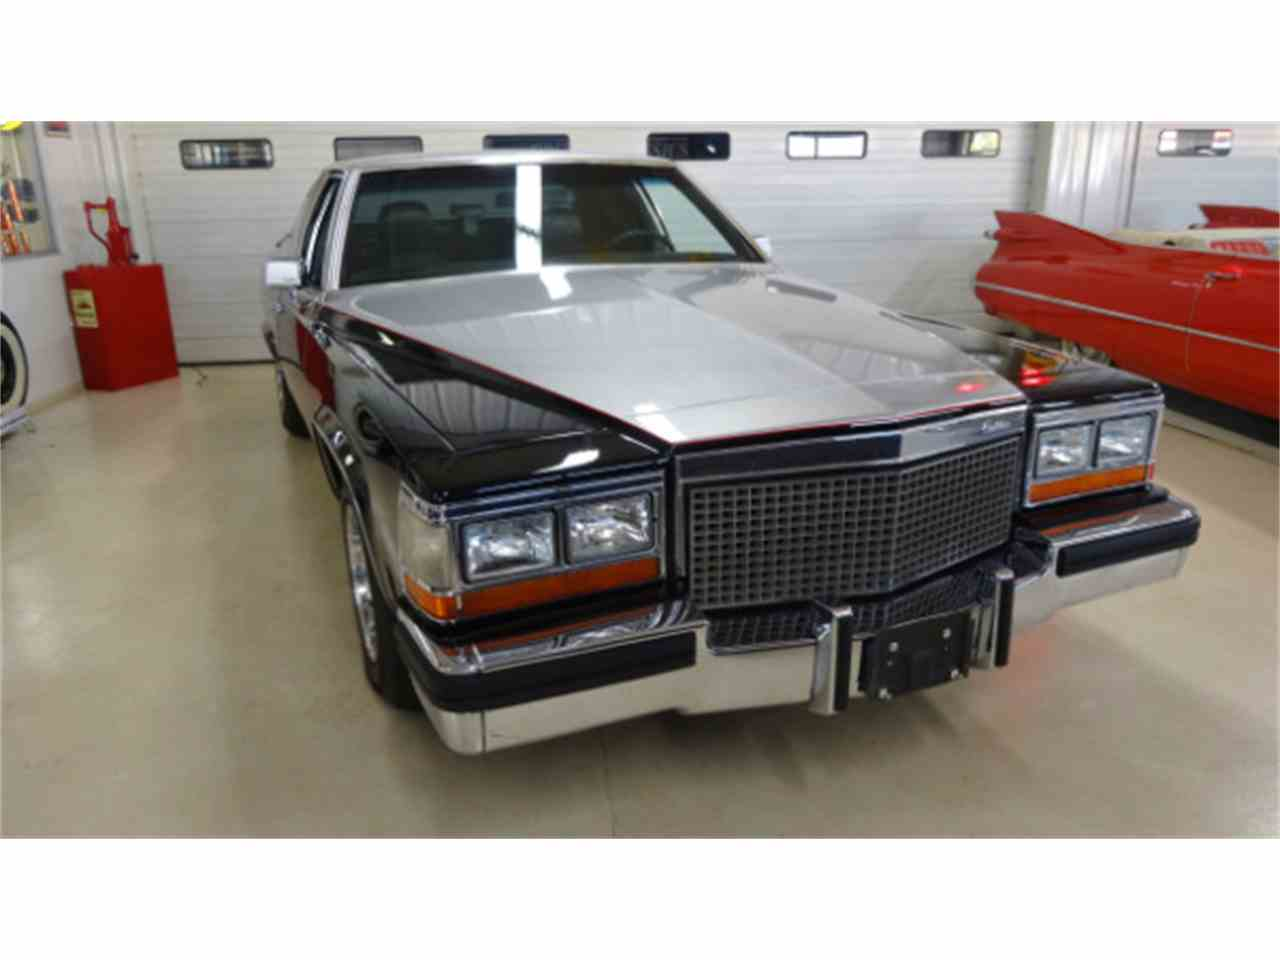 Large Picture of 1981 Cadillac Fleetwood Brougham located in Columbus Ohio - $11,995.00 Offered by Cruisin Classics - JQKH